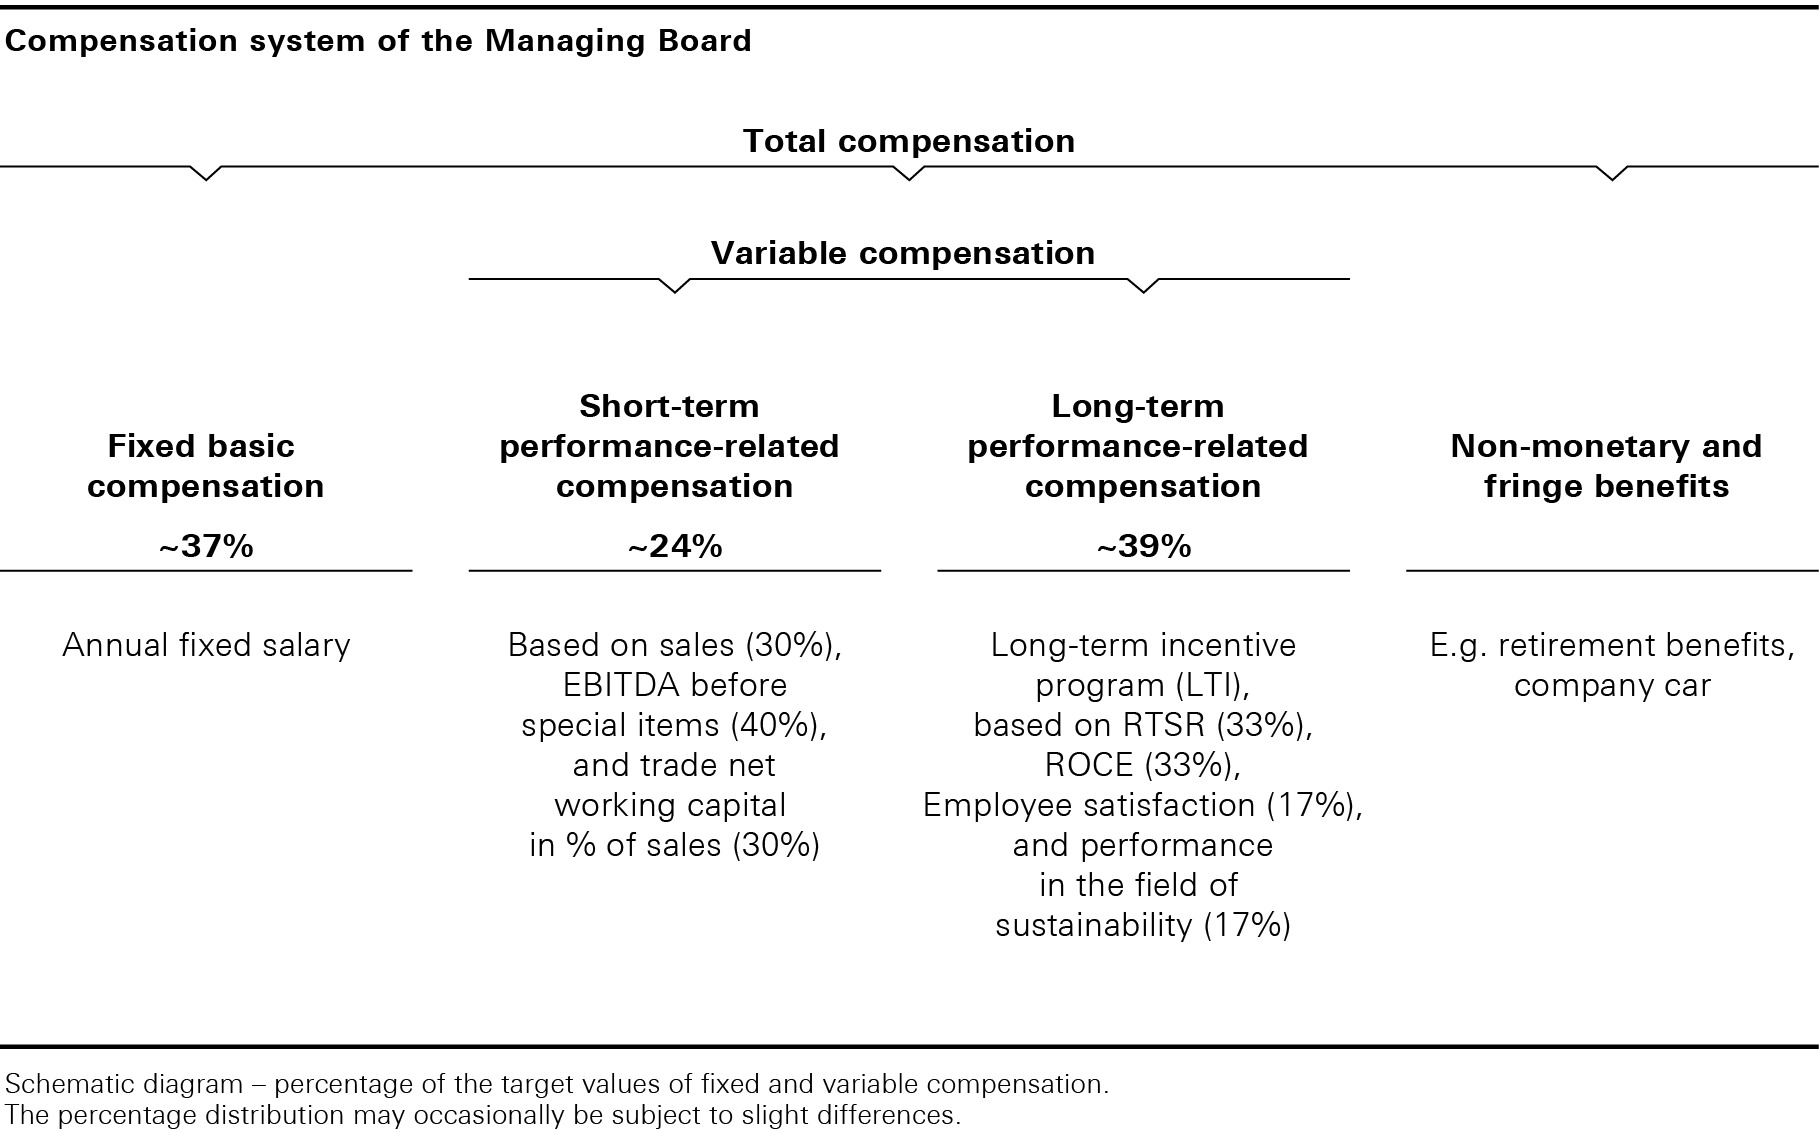 Compensation system of the Managing Board (graphic)